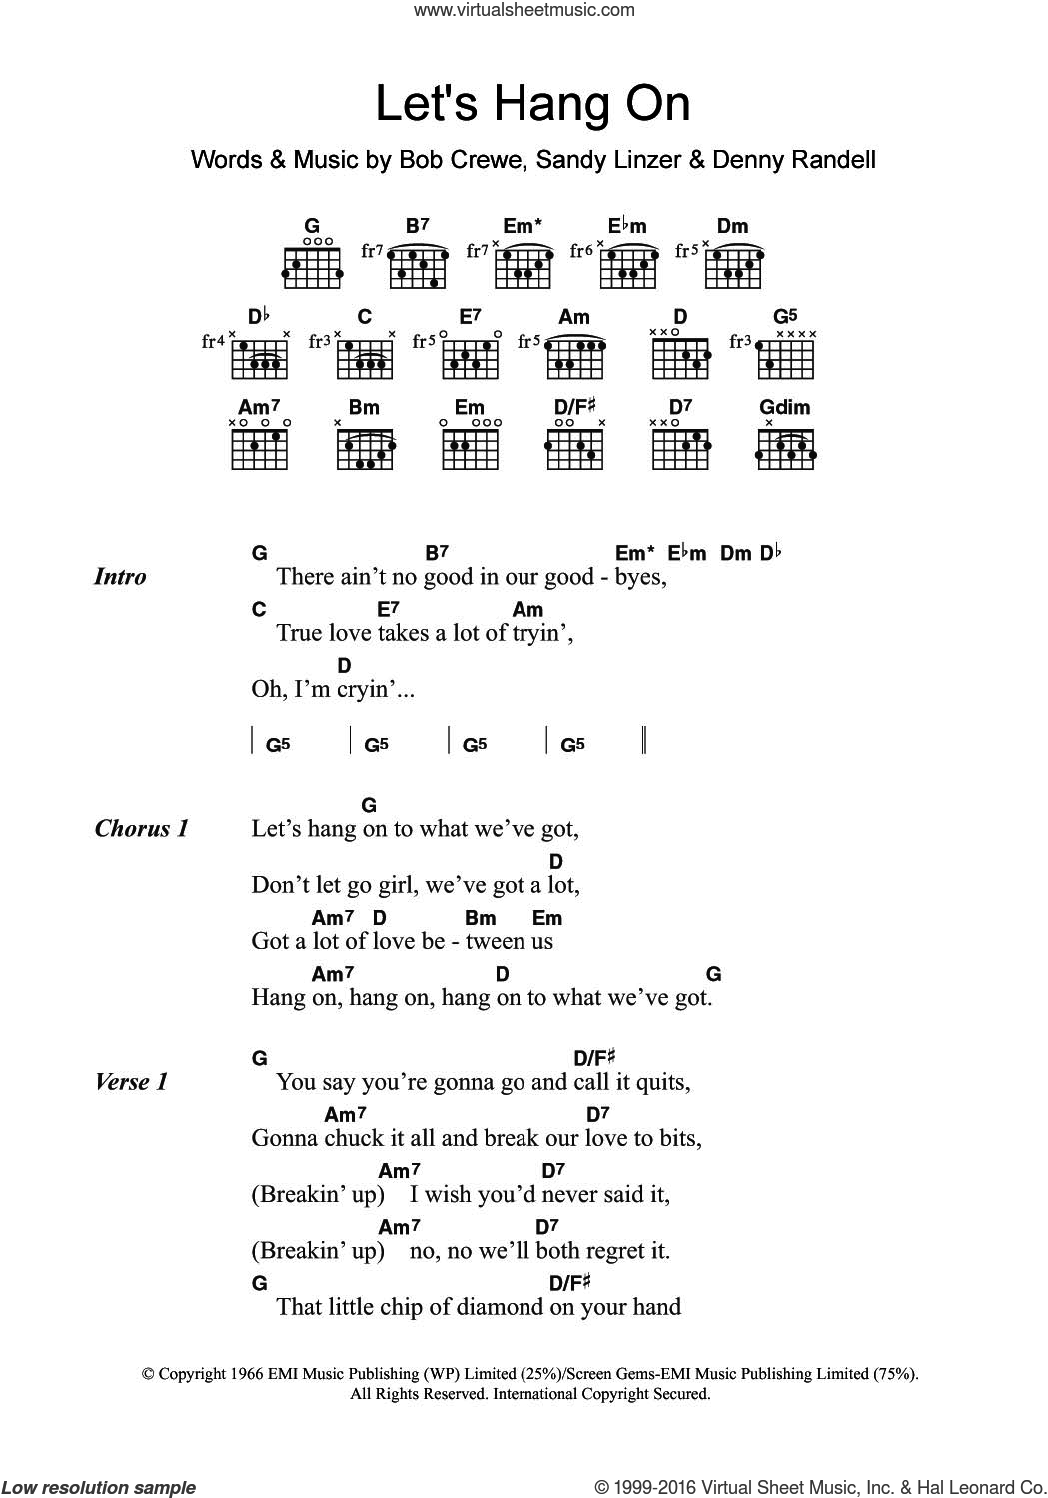 Let's Hang On sheet music for guitar (chords) by The Four Seasons, Bob Crewe, Denny Randell and Sandy Linzer, intermediate. Score Image Preview.